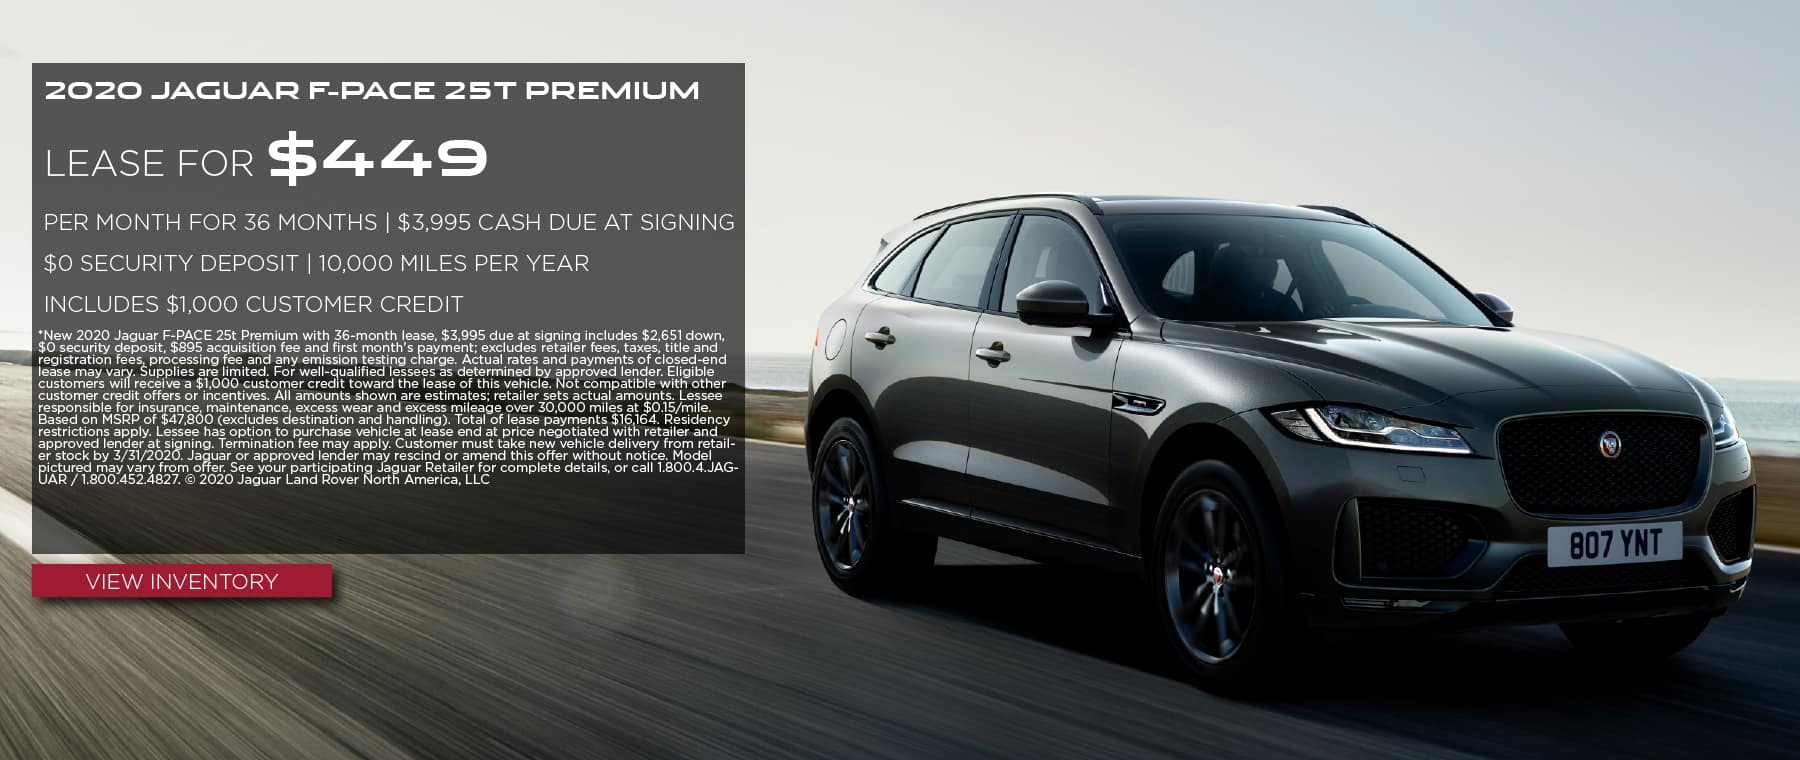 2020 JAGUAR F-PACE 25T PREMIUM. $449 PER MONTH. 36 MONTH LEASE TERM. $3,995 CASH DUE AT SIGNING. INCLUDES $1,000 CUSTOMER CREDIT. $0 SECURITY DEPOSIT. 10,000 MILES PER YEAR. OFFER ENDS 3/31/2020. VIEW INVENTORY. THE BLACK JAGUAR F-PACE DRIVING DOWN ROAD.